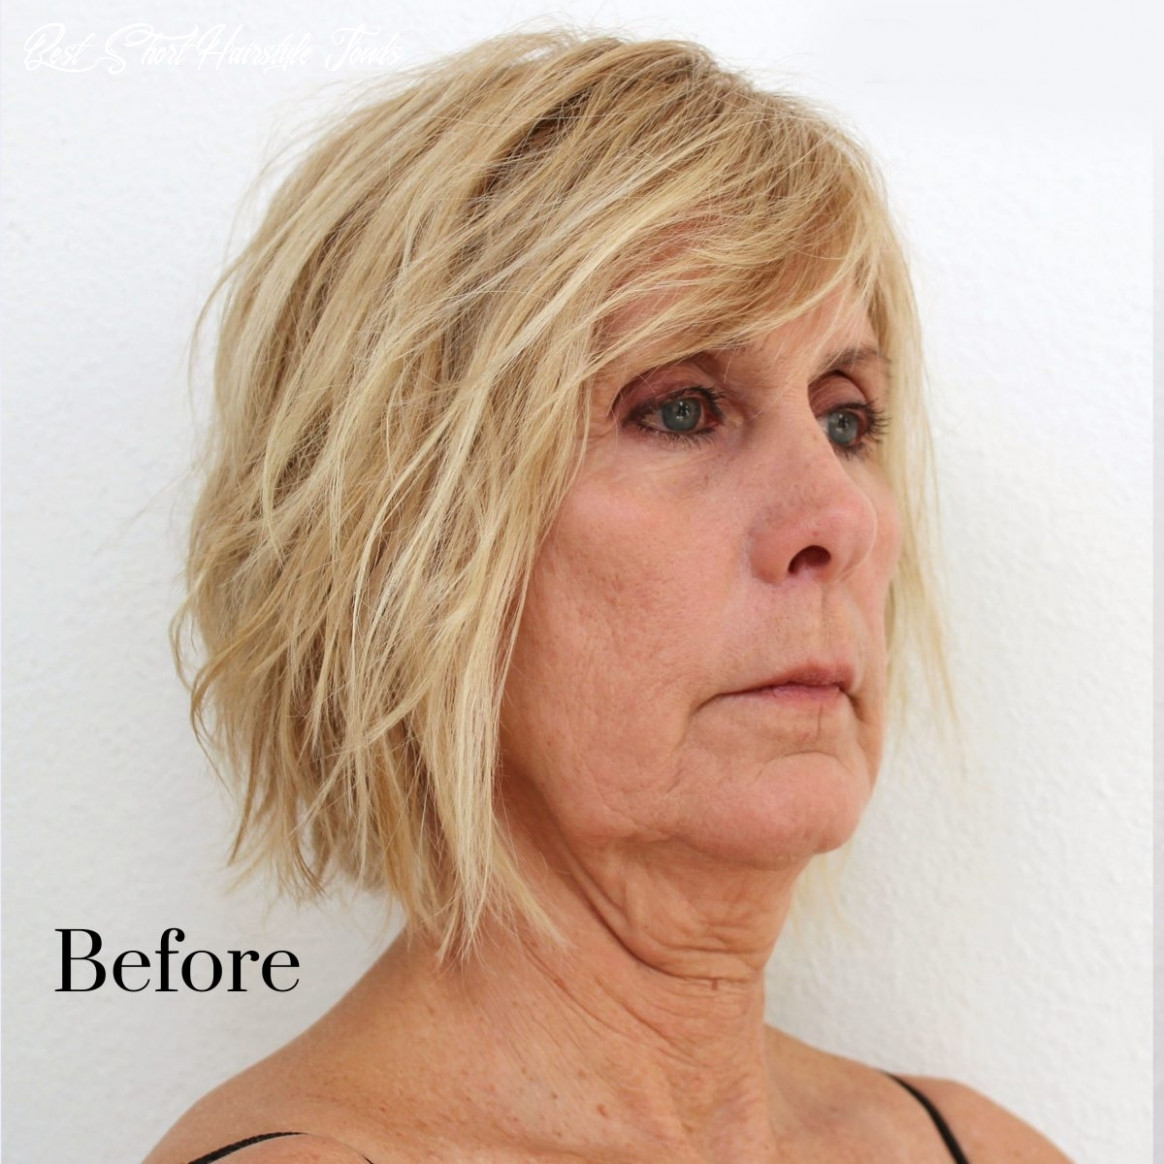 How to hide jowls hairstyle best short hairstyle jowls